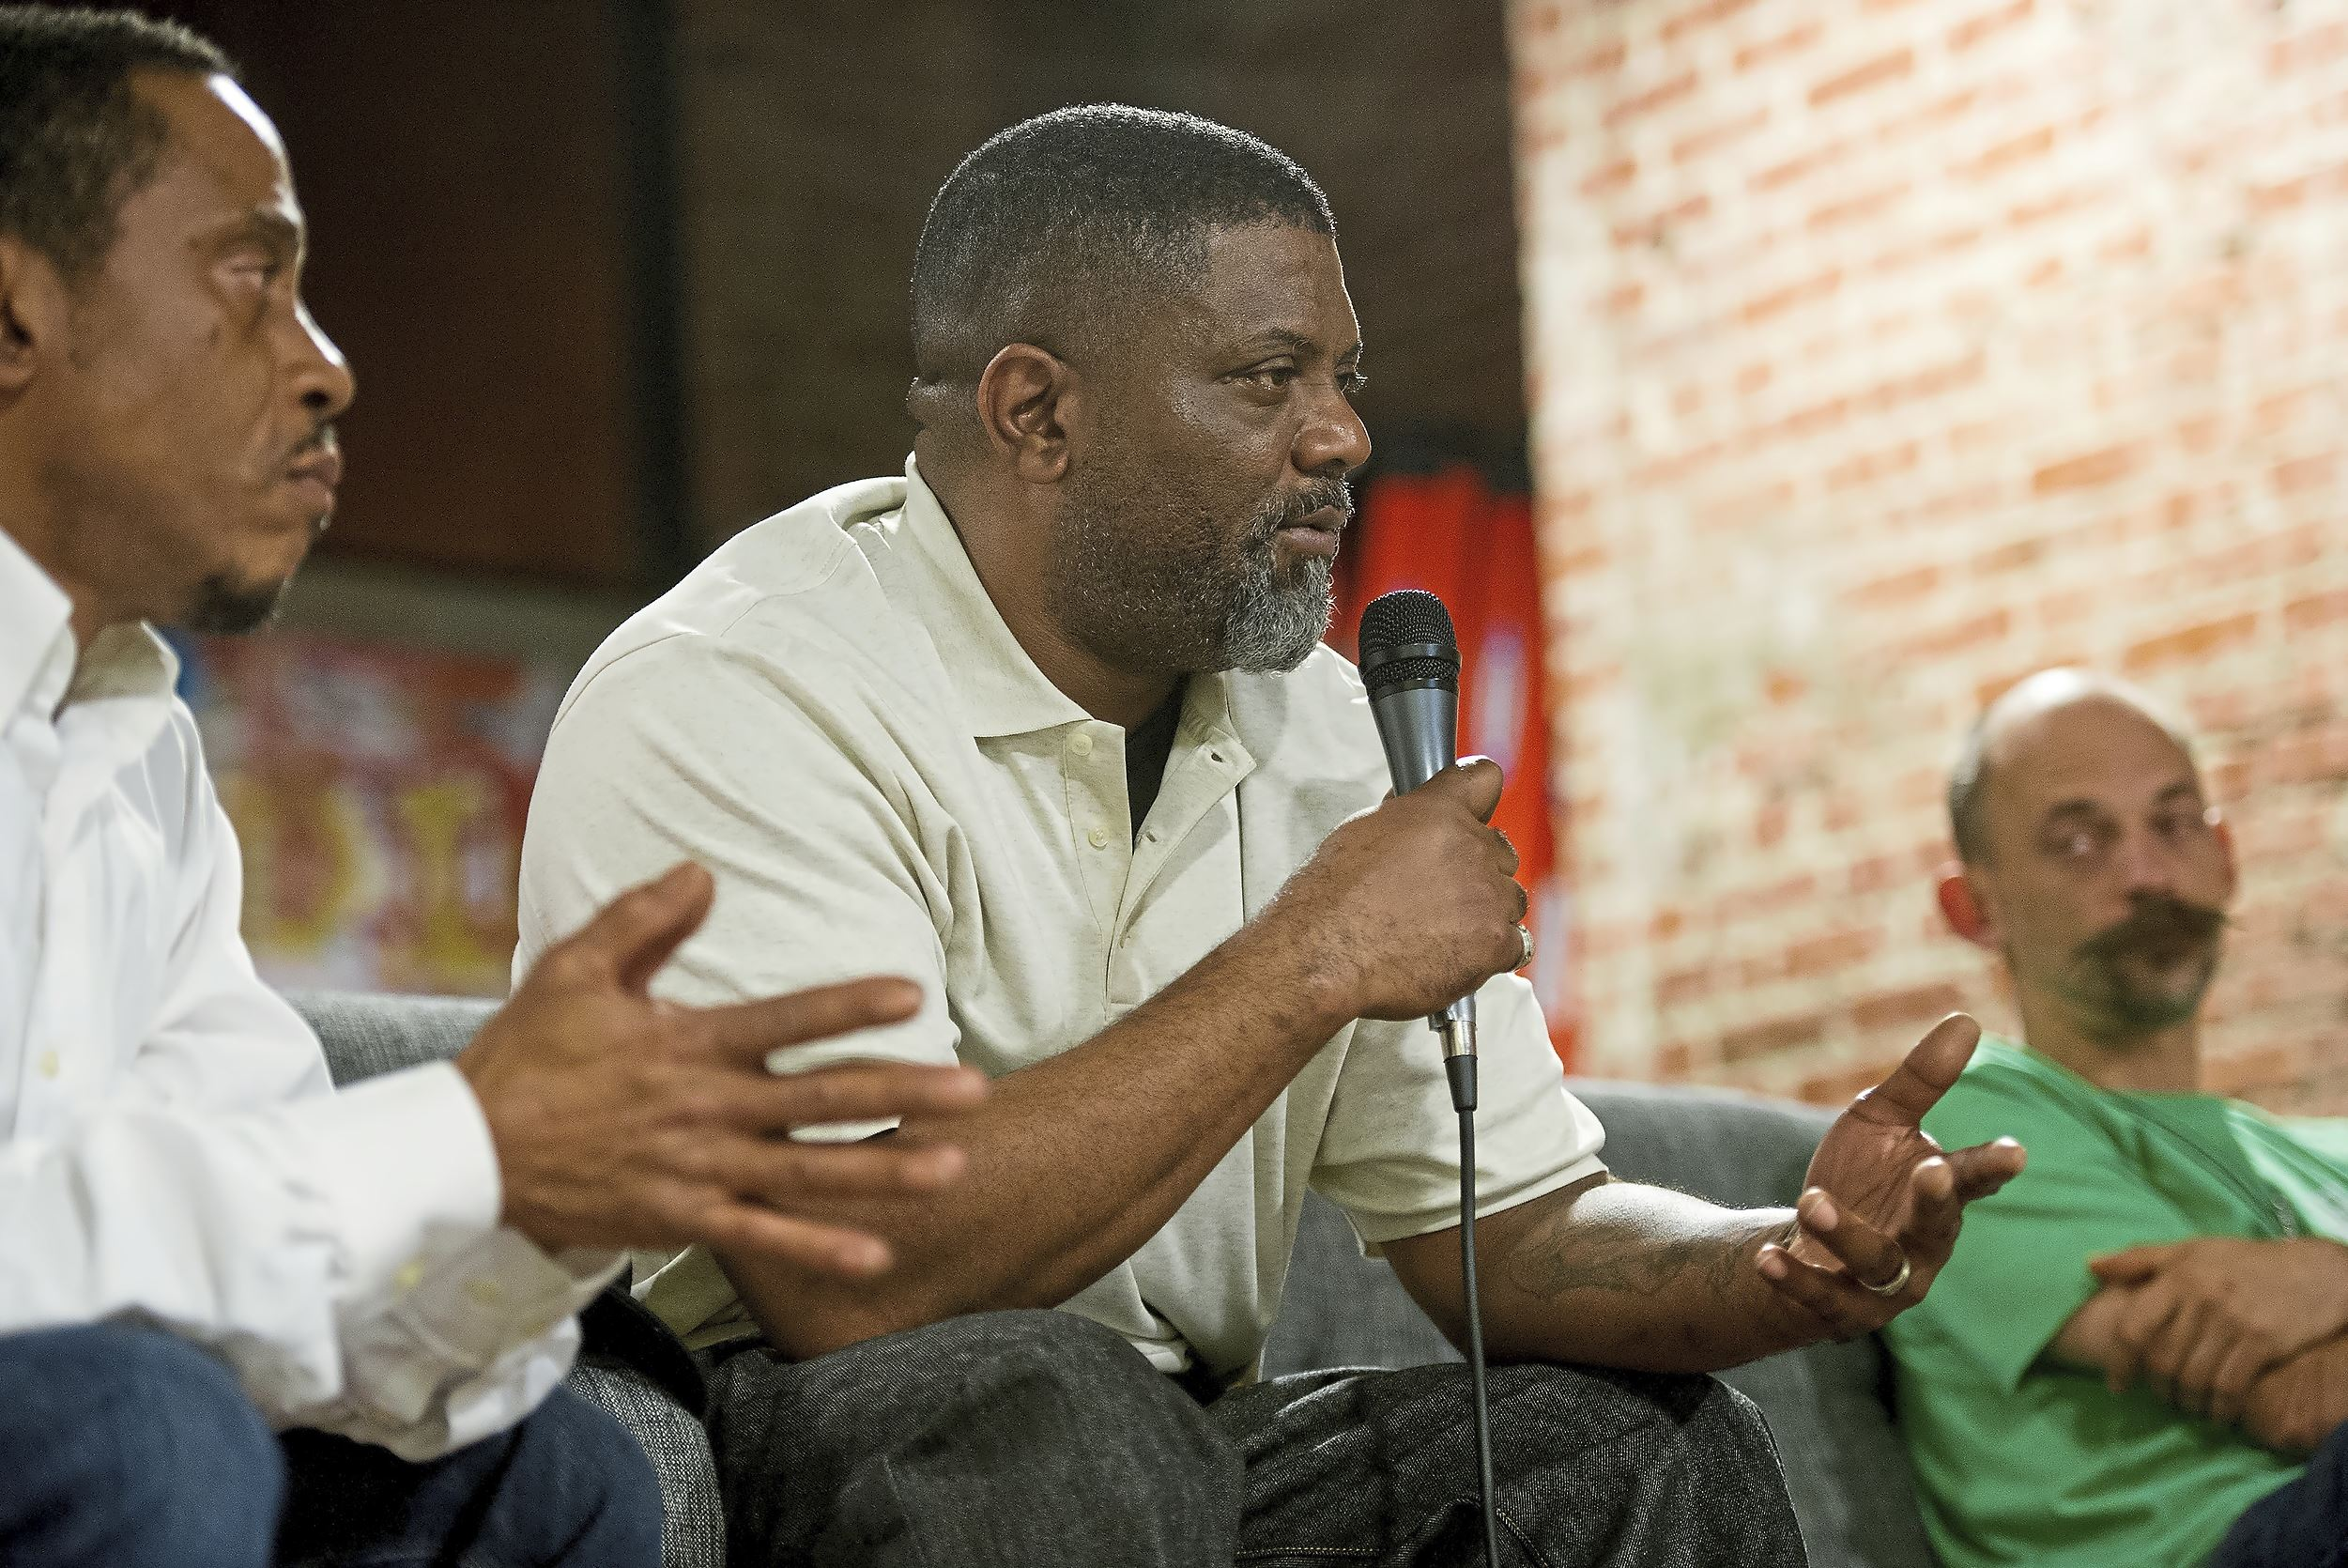 20171130rldRepairWorld01 Julius Drake, center, of Homewood speaks during the Repair the World Pittsburgh panel discussion Thursday in East Liberty. Anthony Parks of Highland Park, left, and Josh Inklovich, right, of Garfield also spoke on the panel.